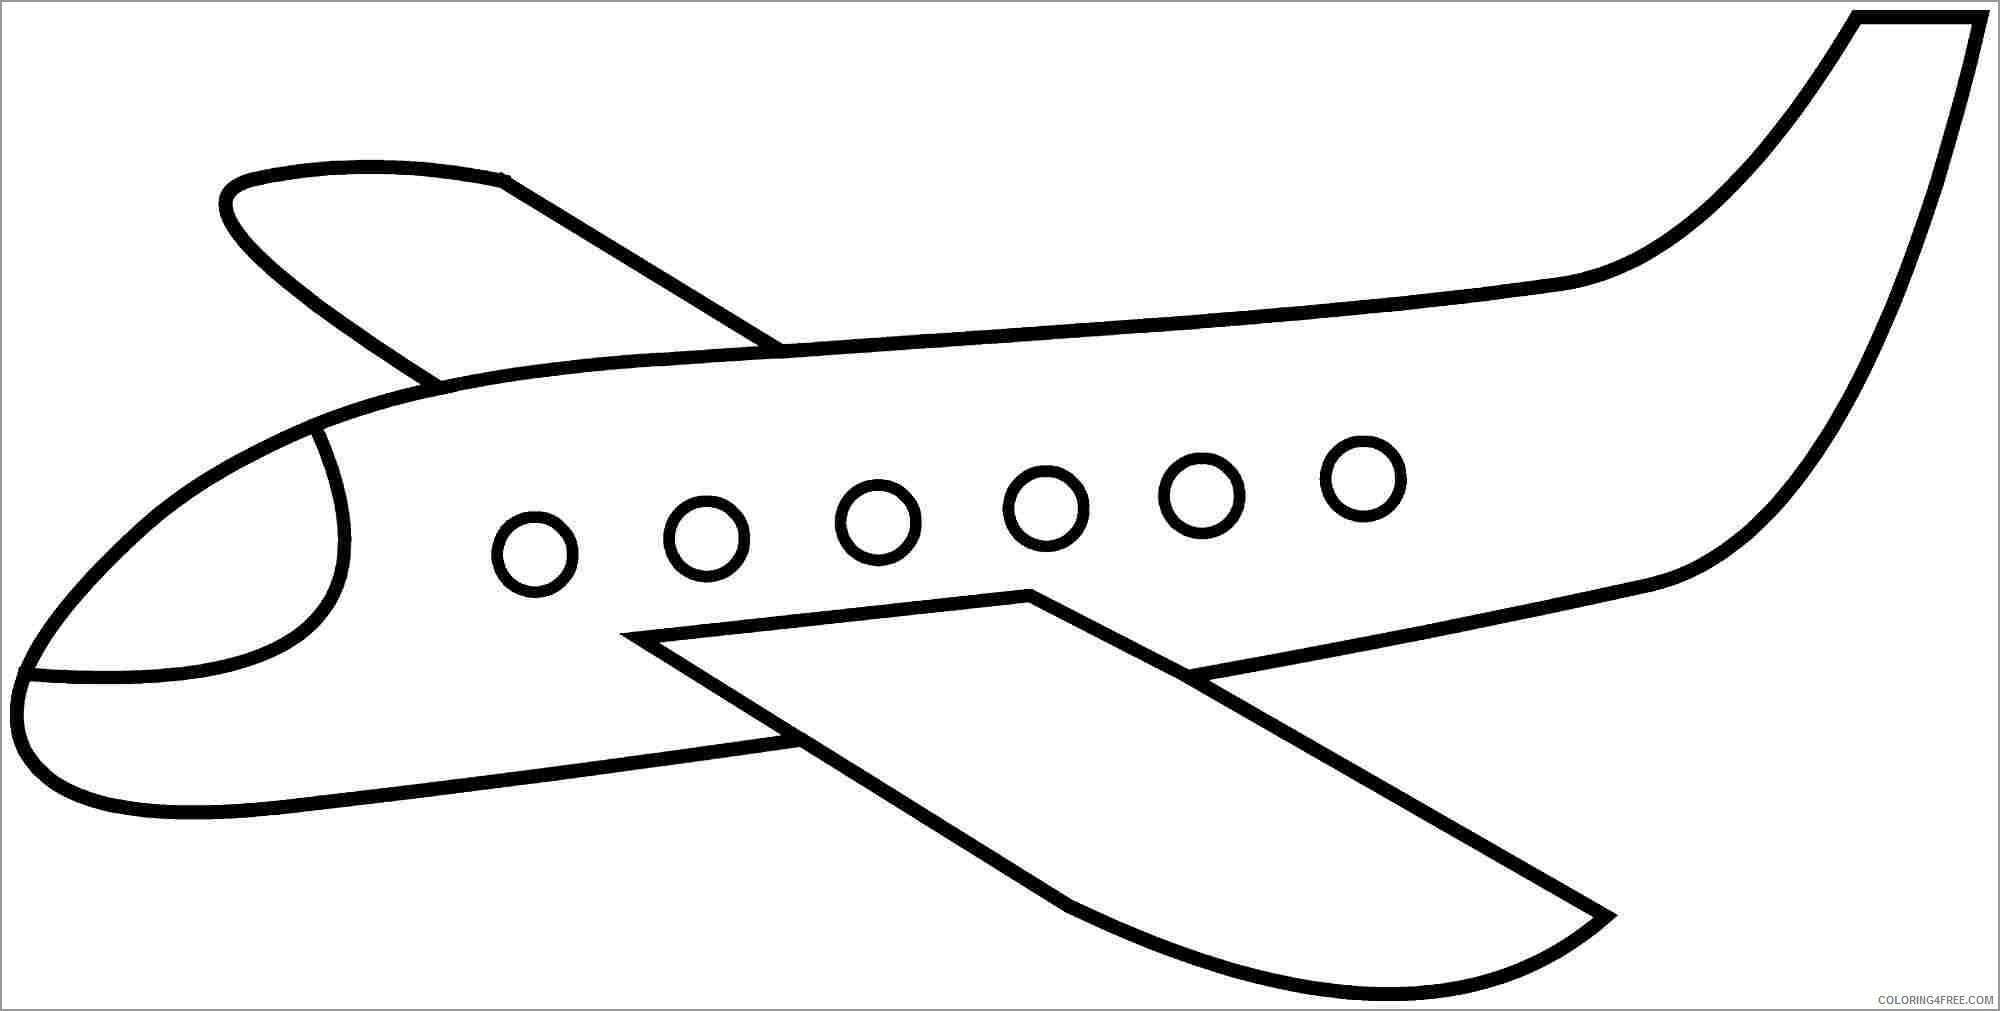 Simple Coloring Pages for Kids simple airplane for kids Printable 2021 561 Coloring4free